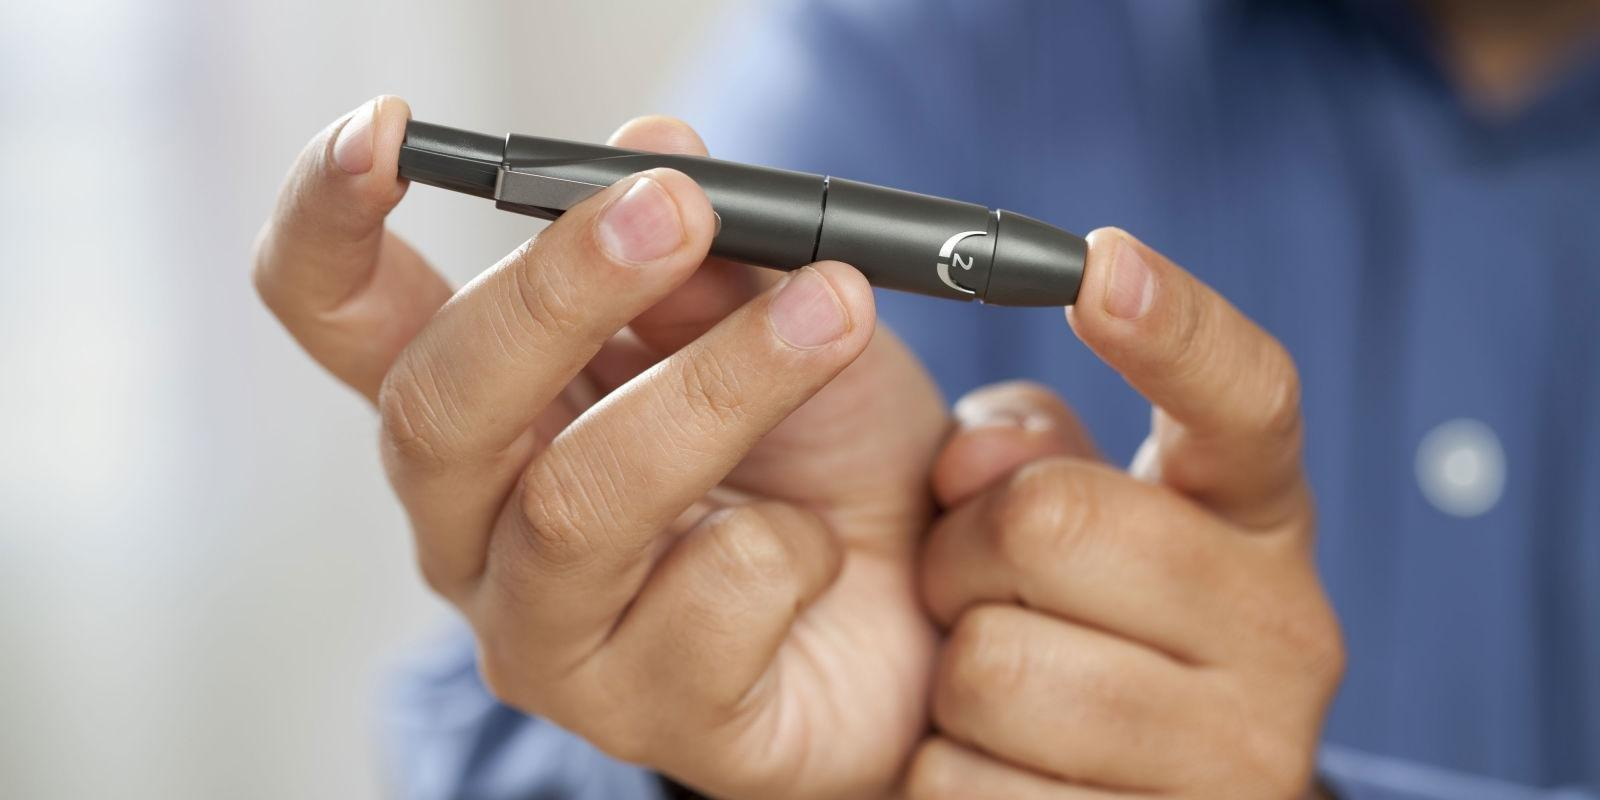 What Does It Mean To Have A High Glucose Level?